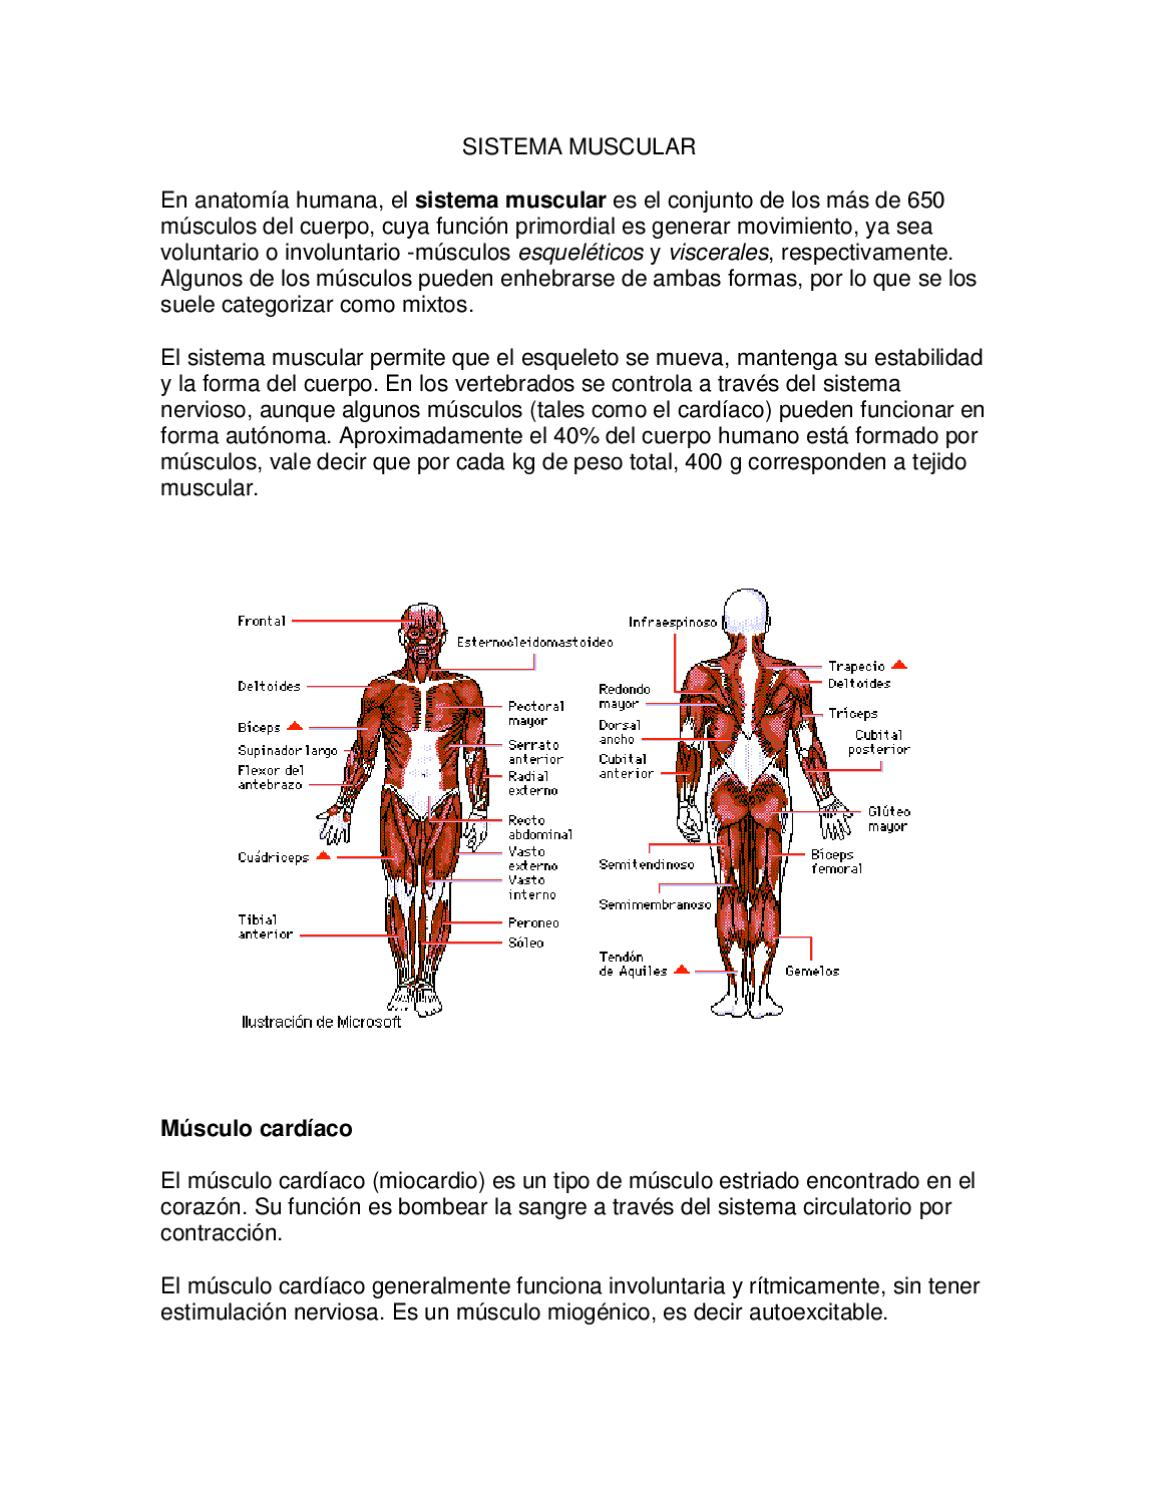 SISTEMA MUSCULAR by andrea campaña - issuu